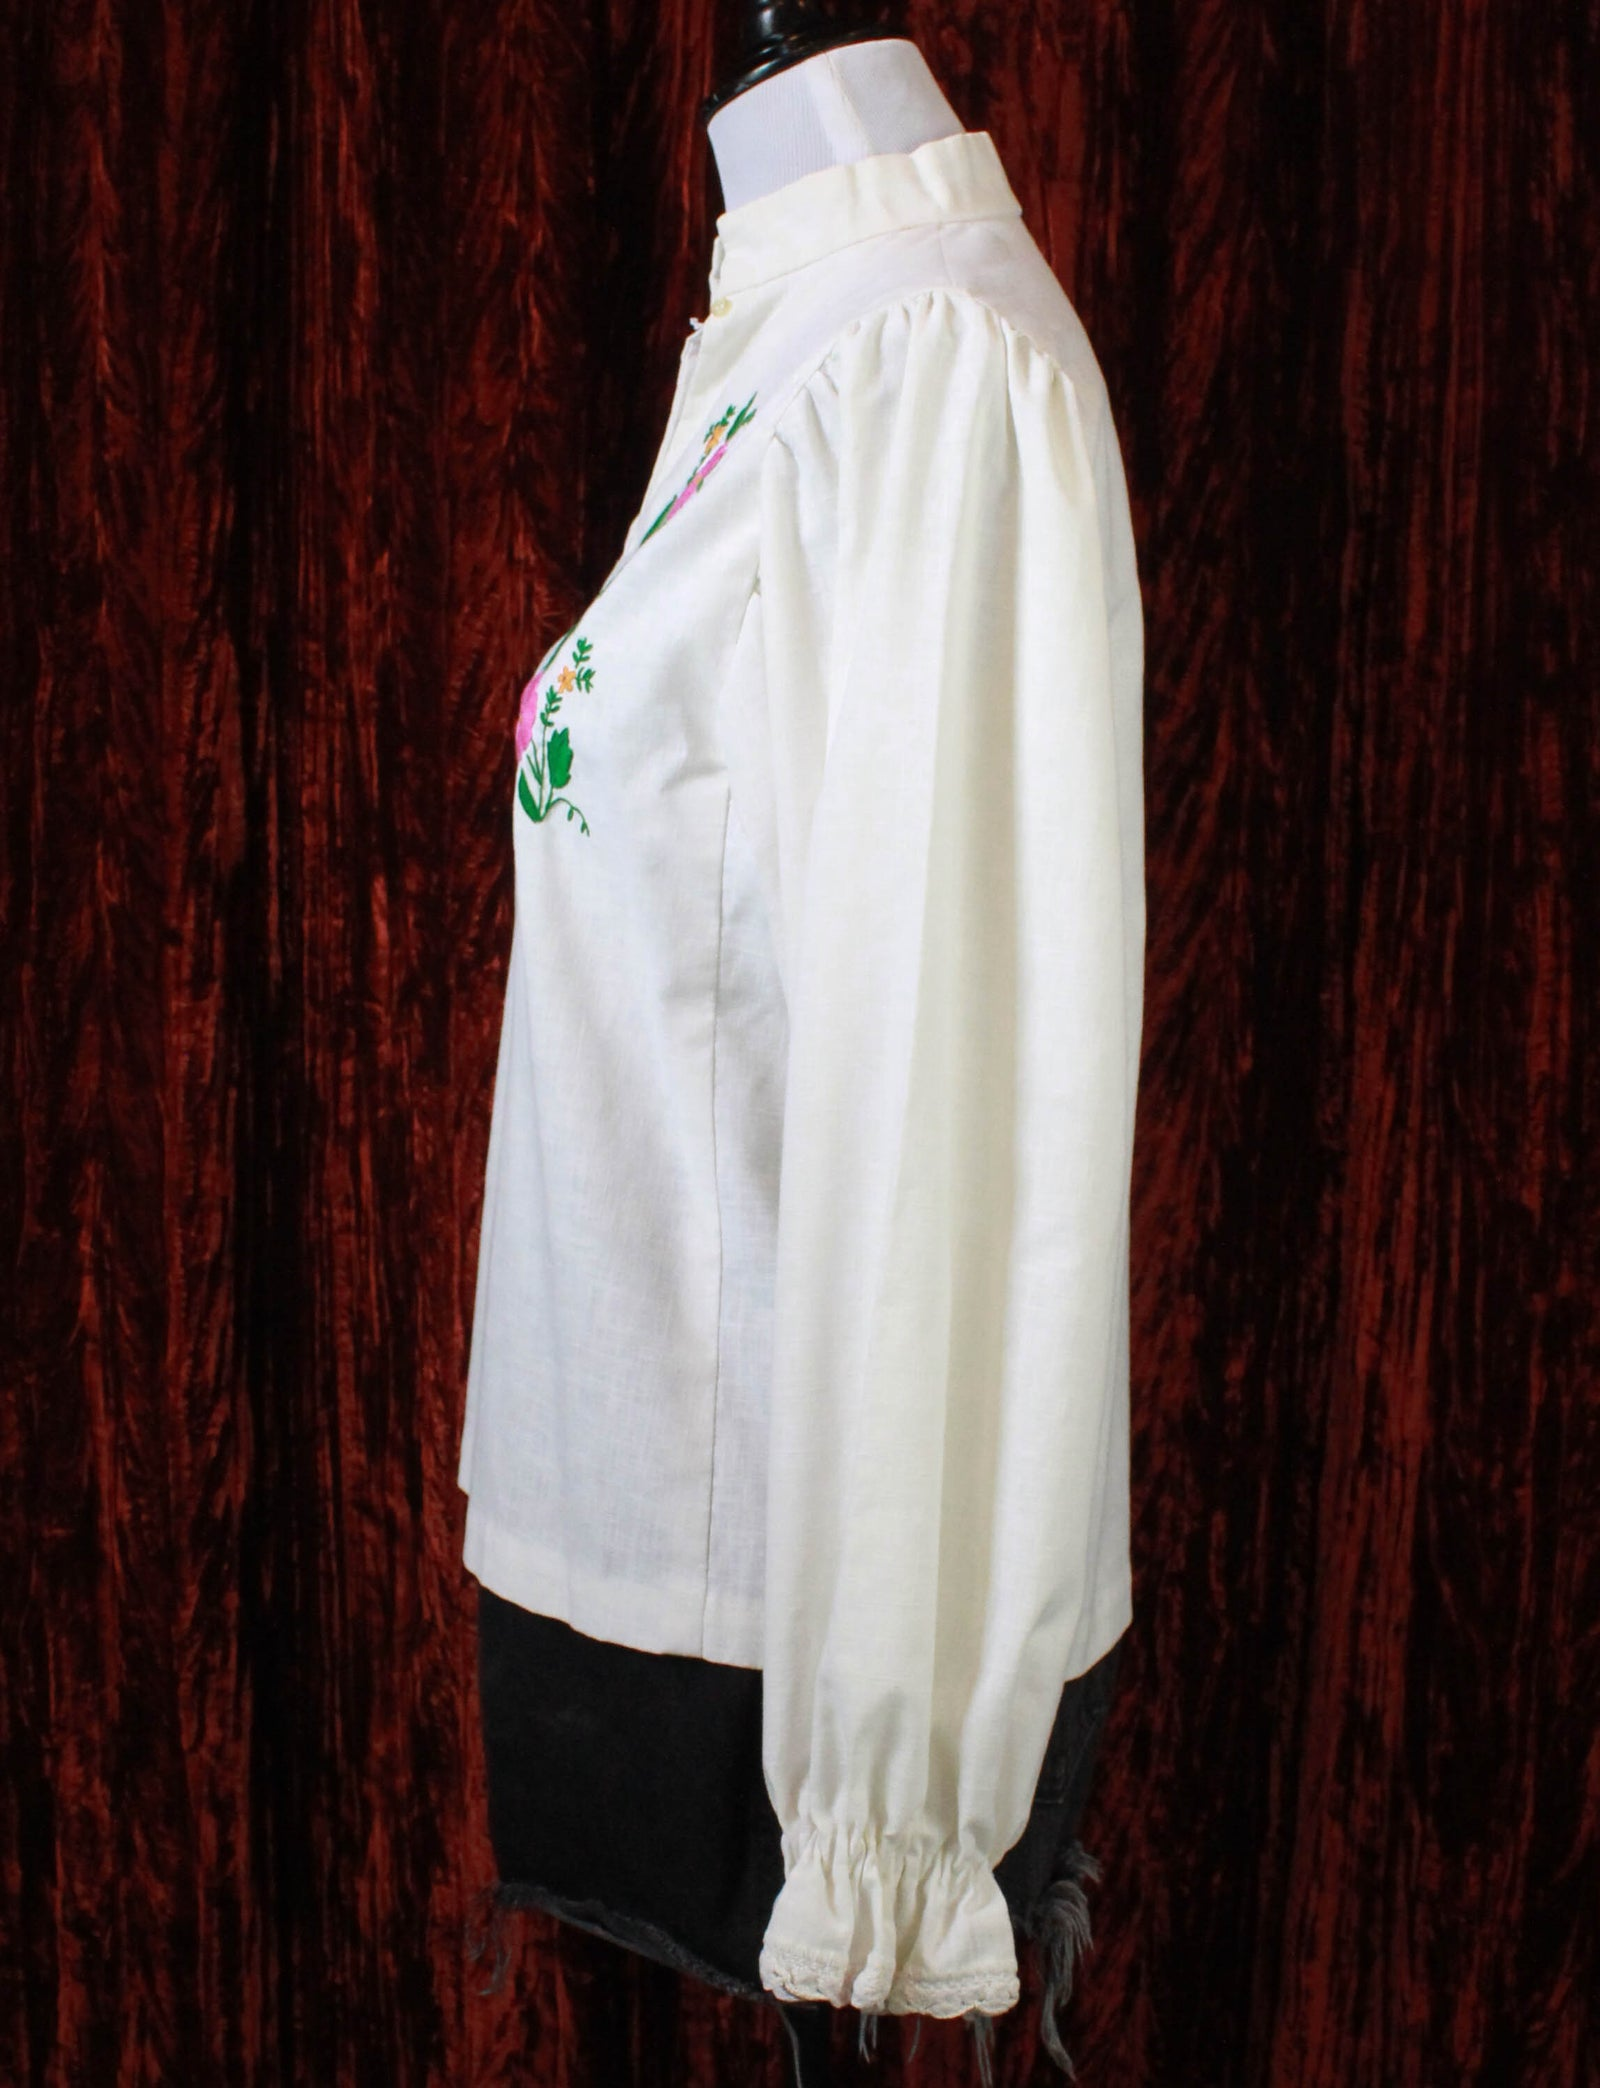 Women's Vintage 70's Embroidered White Linen Peasant Top - S/M